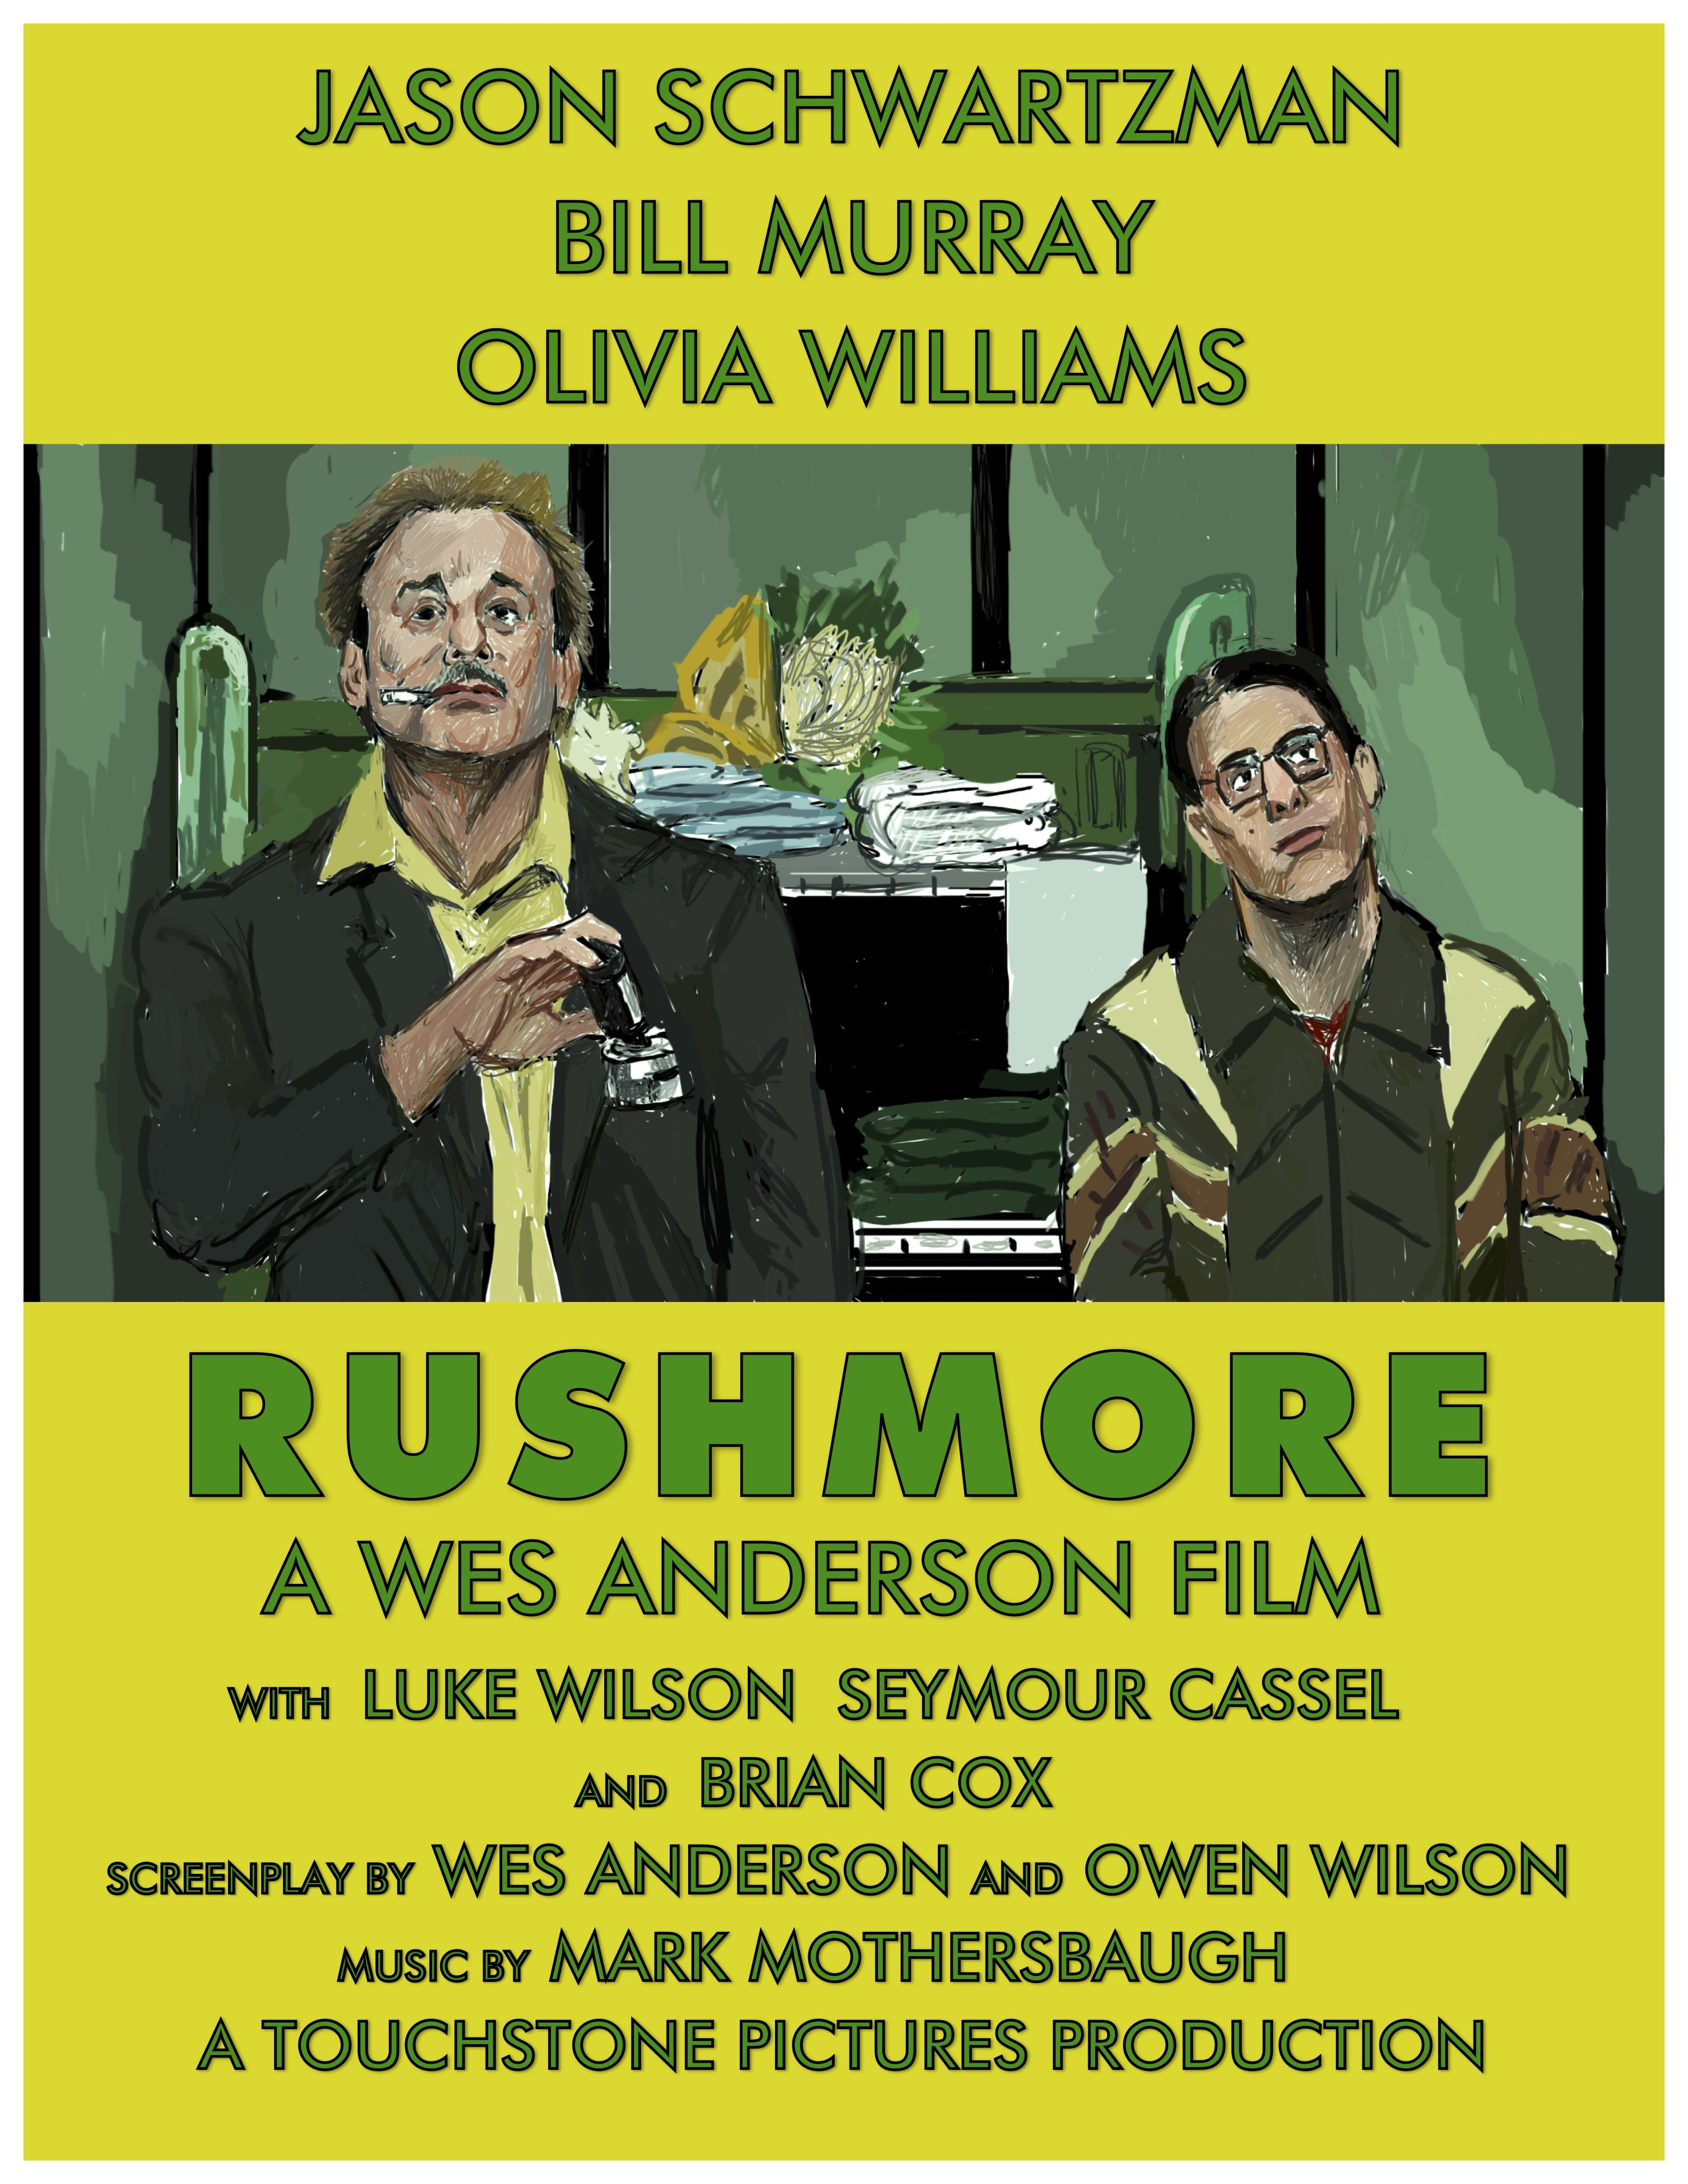 Rushmore 1998 Alternative Poster Wes Anderson Films Touchstone Pictures Mark Mothersbaugh